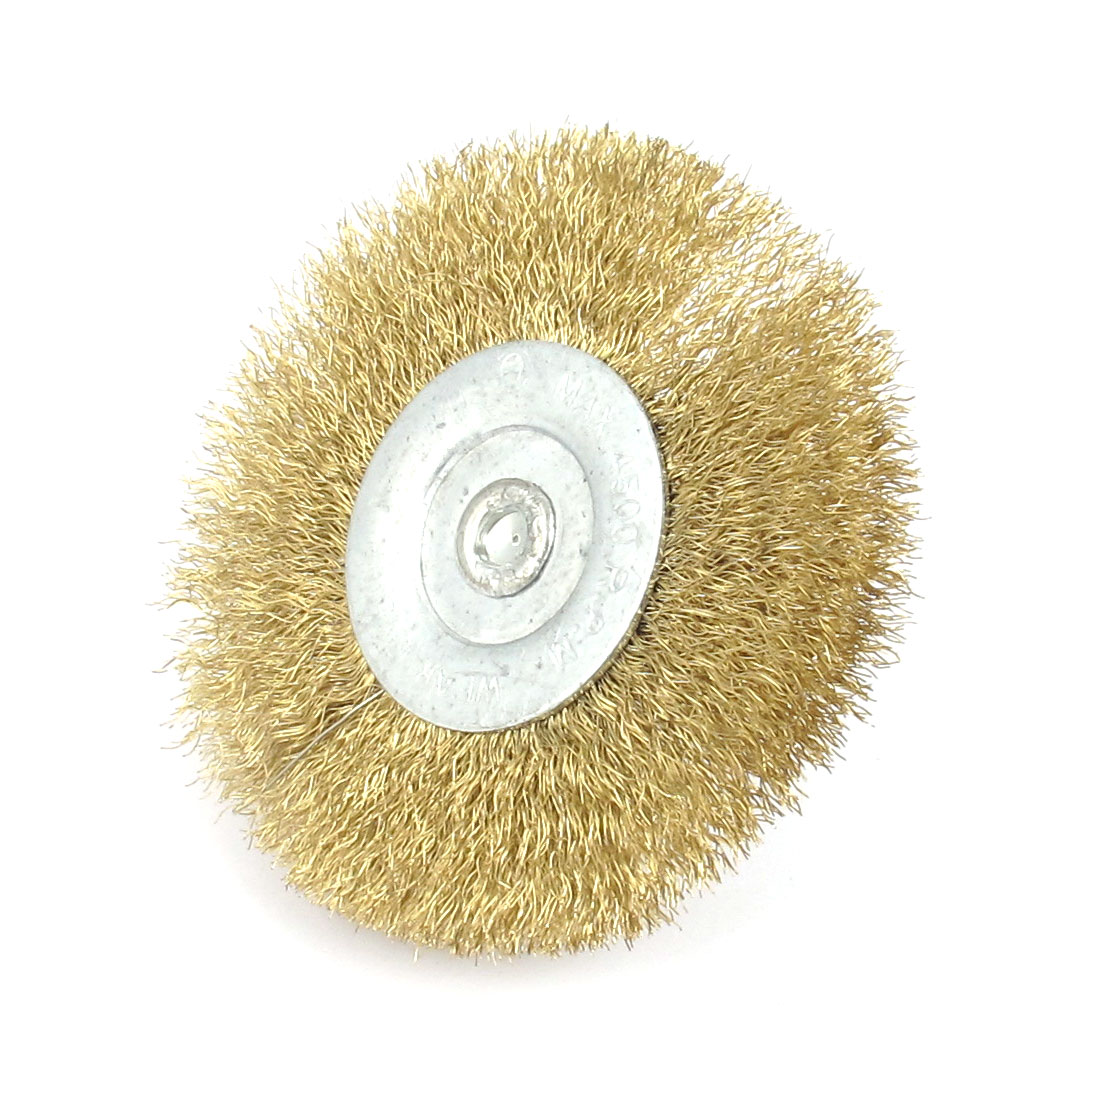 6mm Shank 75mm Dia Crimped Steel Wire Wheel Polishing Brushes 47mm Long